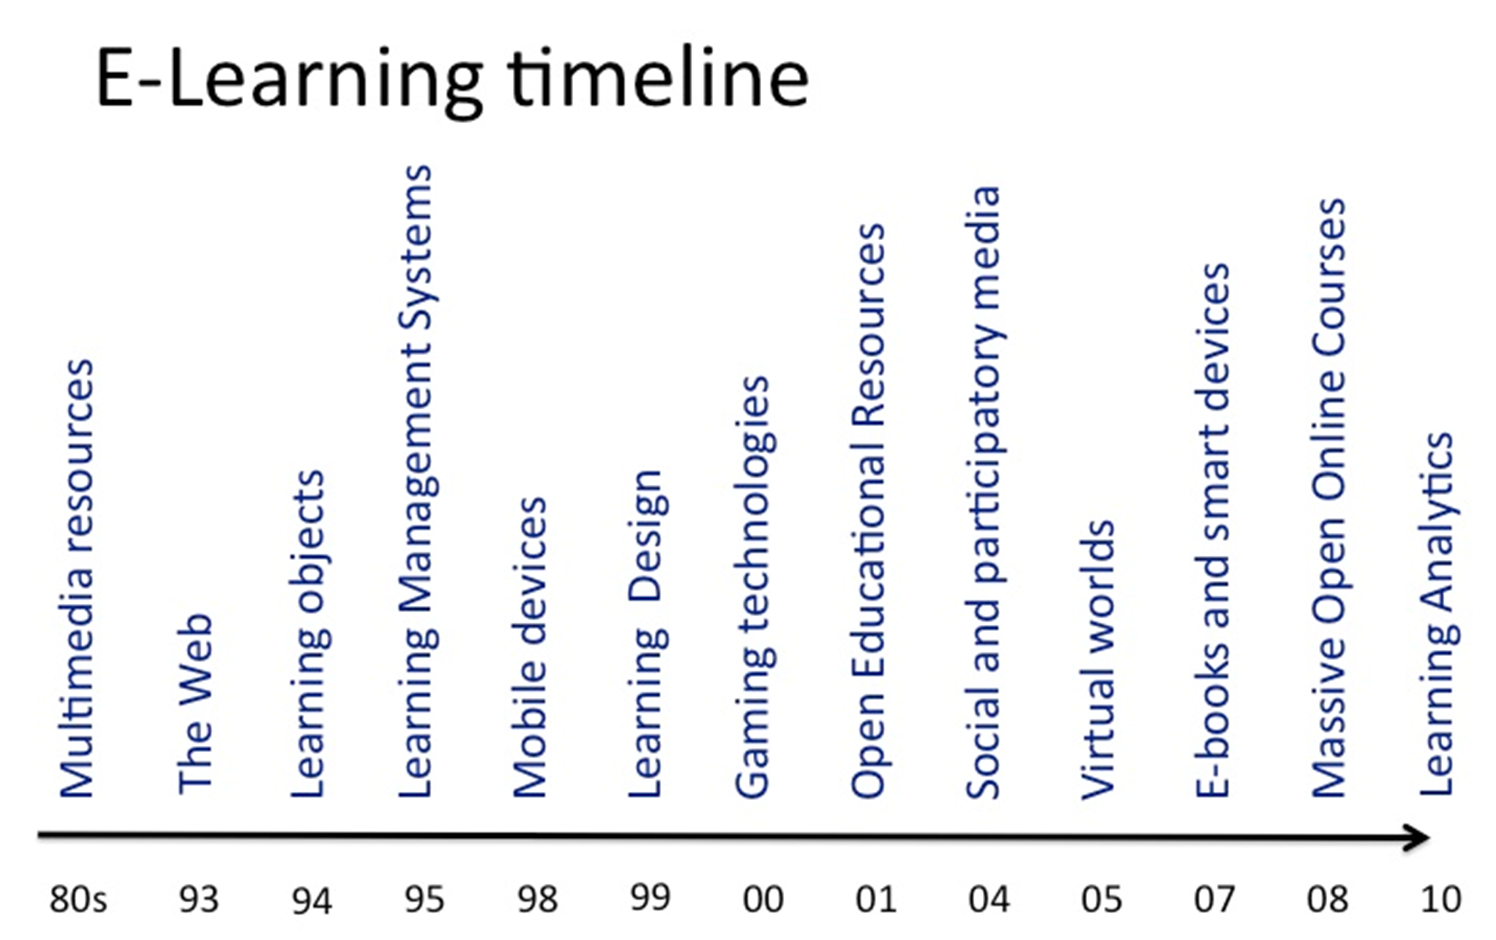 files/images/e-learning_timeline.PNG